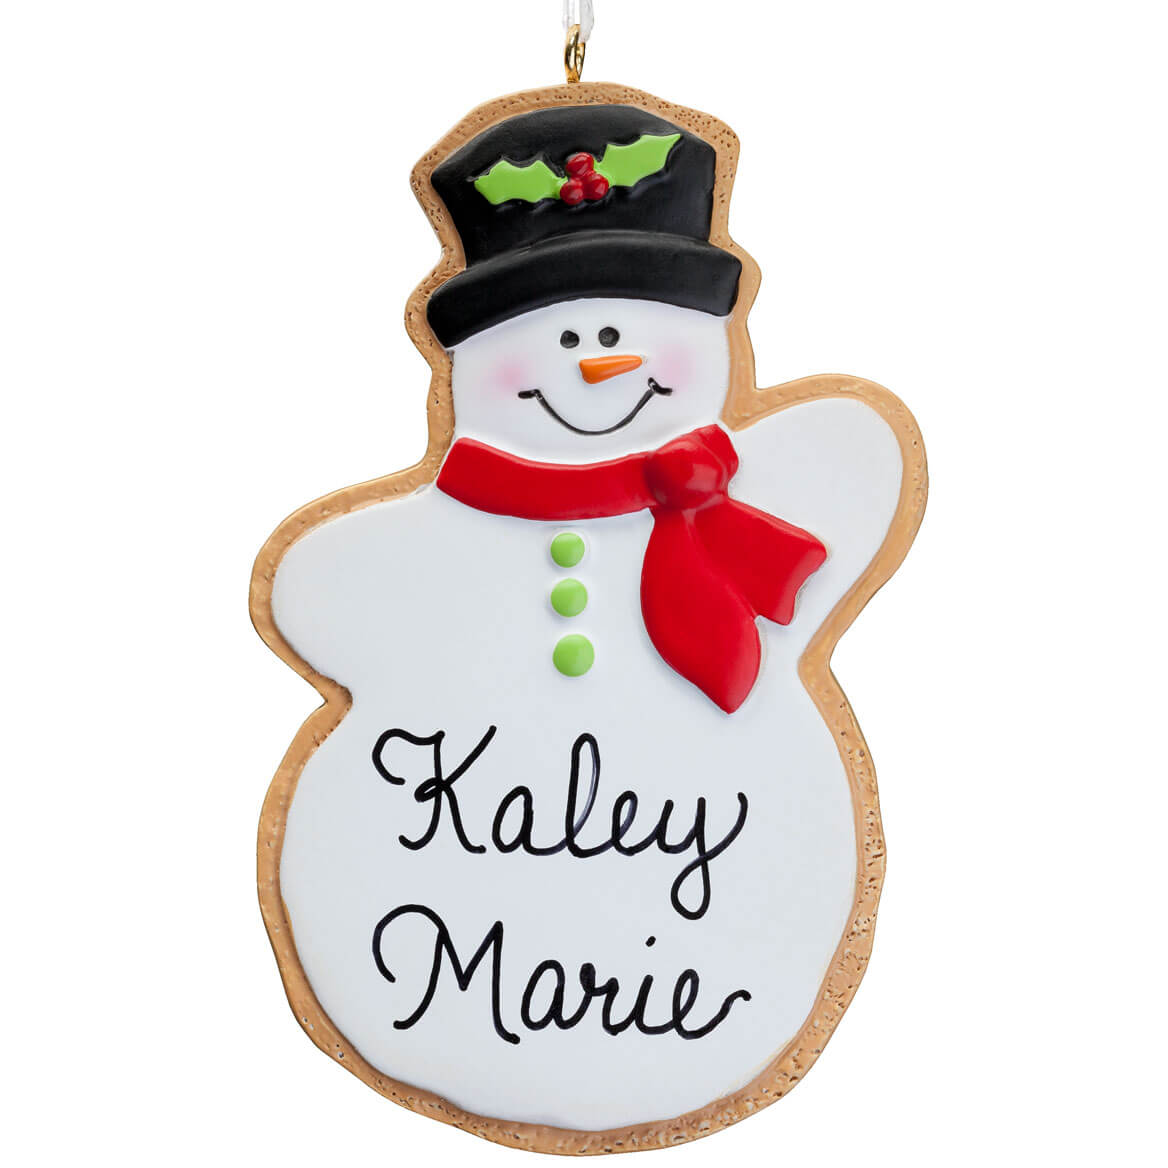 Personalized Snowman Christmas Cookie Ornament-347623